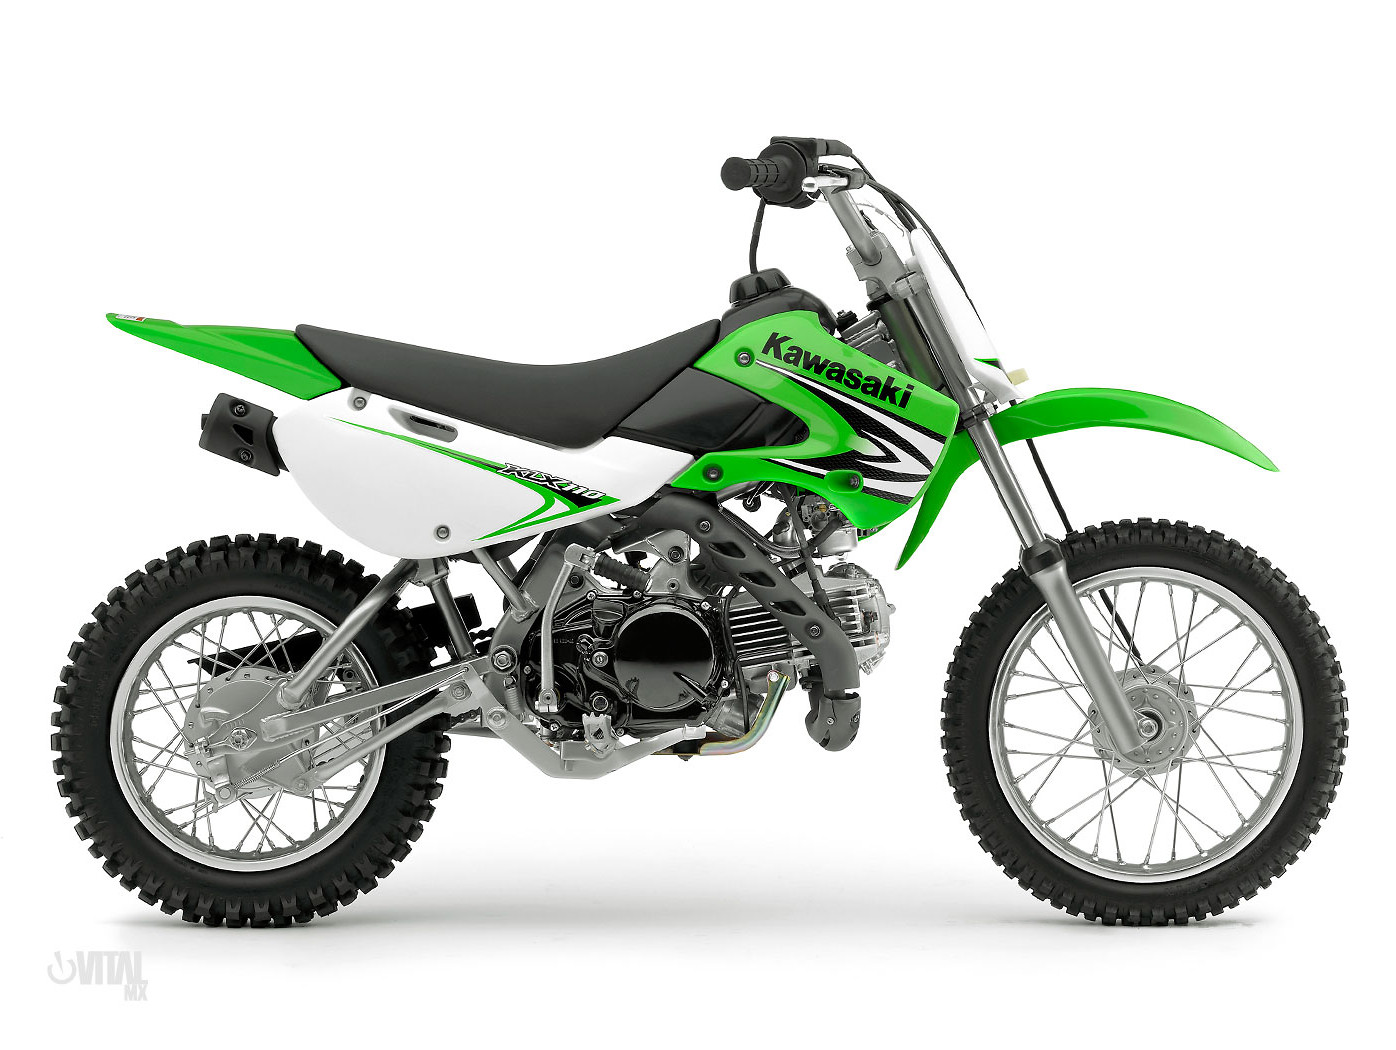 2008 kawasaki klx110 reviews comparisons specs. Black Bedroom Furniture Sets. Home Design Ideas